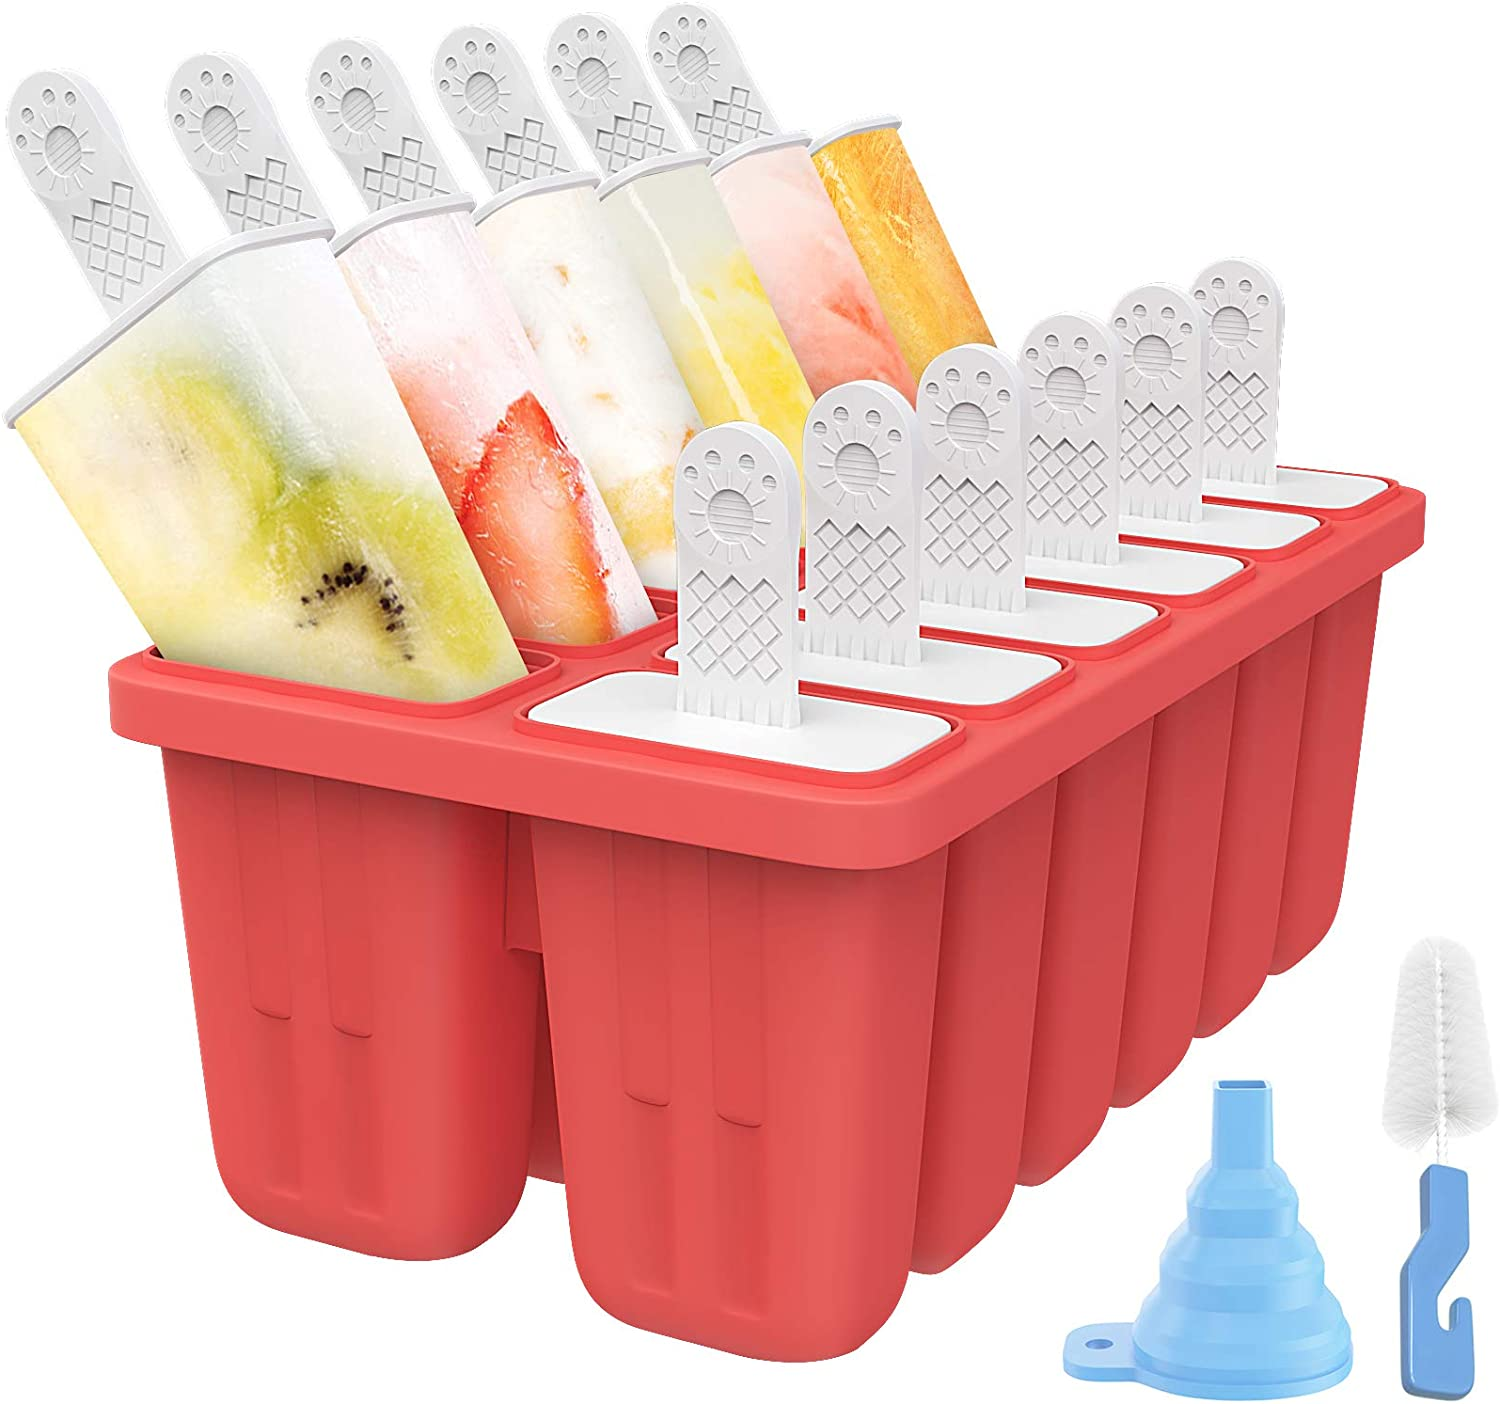 cheap Ozera 12 Cavities Popsicle Molds Mol Reusable Silicone Be super welcome